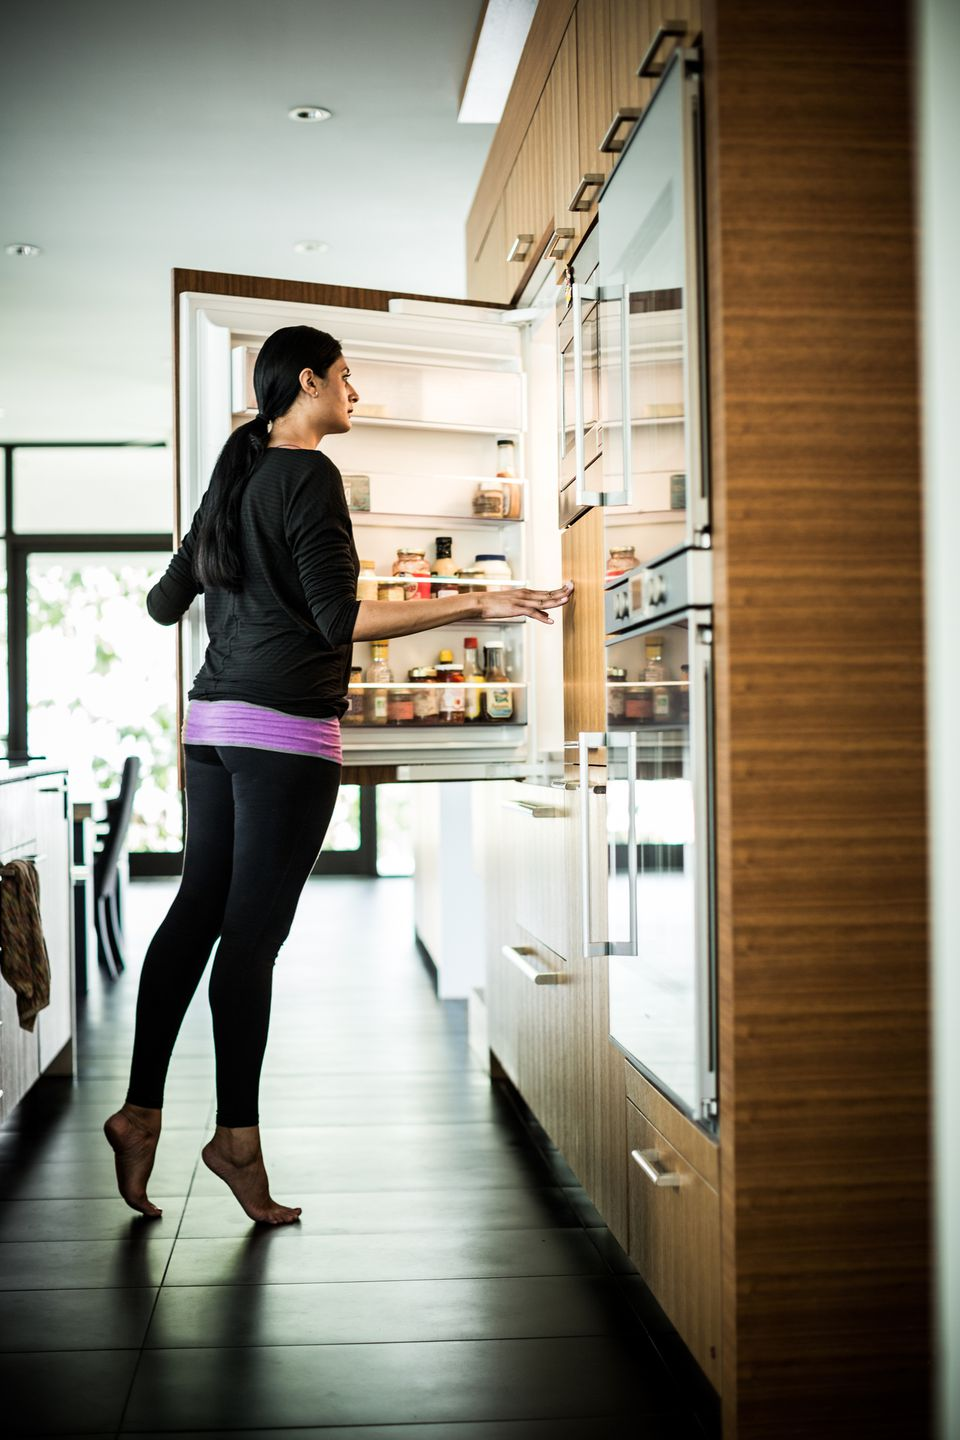 A woman opening a counter-depth fridge